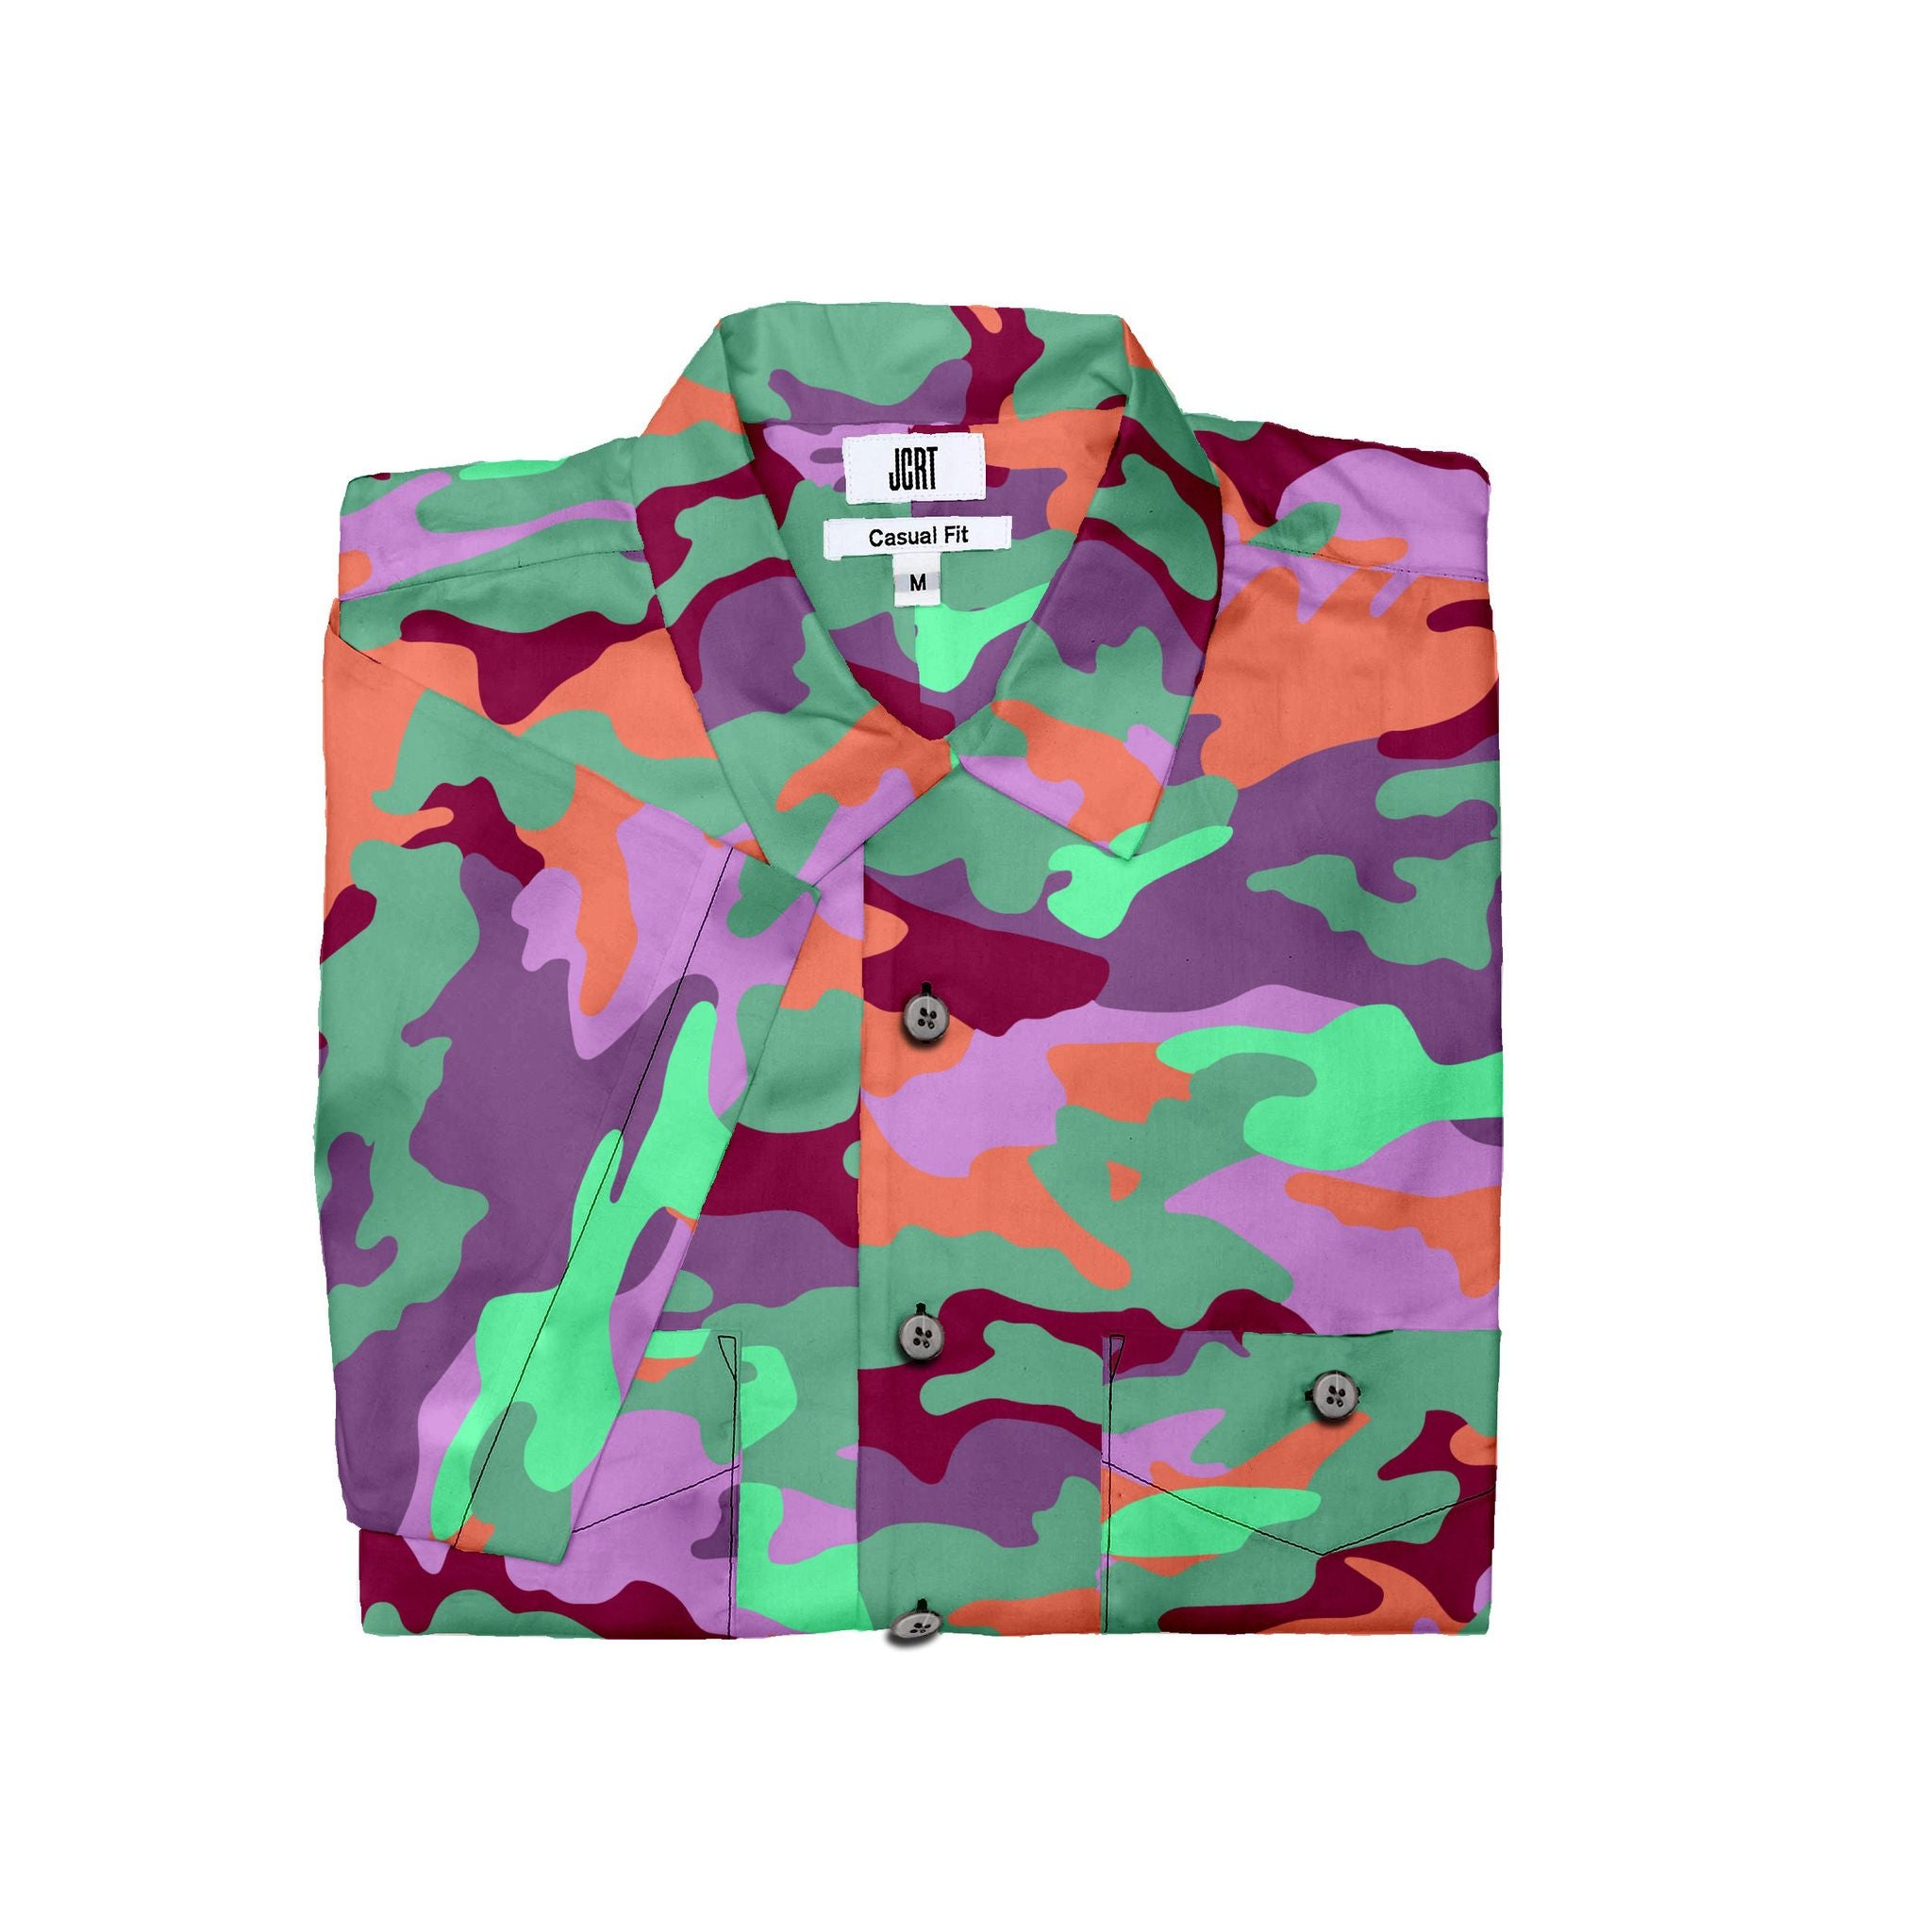 The JCRT Stubbs & Wootton Purple Camo Short Sleeve Shirt